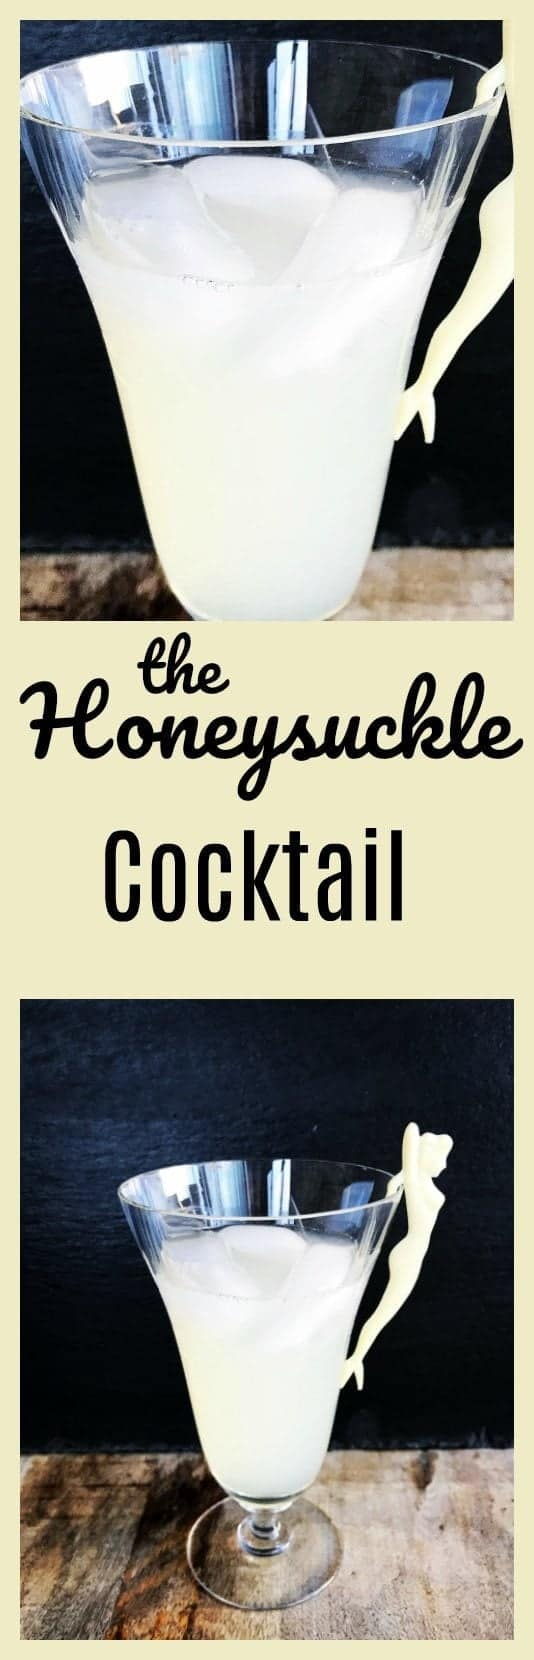 The Honeysuckle cocktail is a simple three ingredient cocktail that anyone can make. It consists of Rum, honey and lemon juice. From @kitchenmagpie